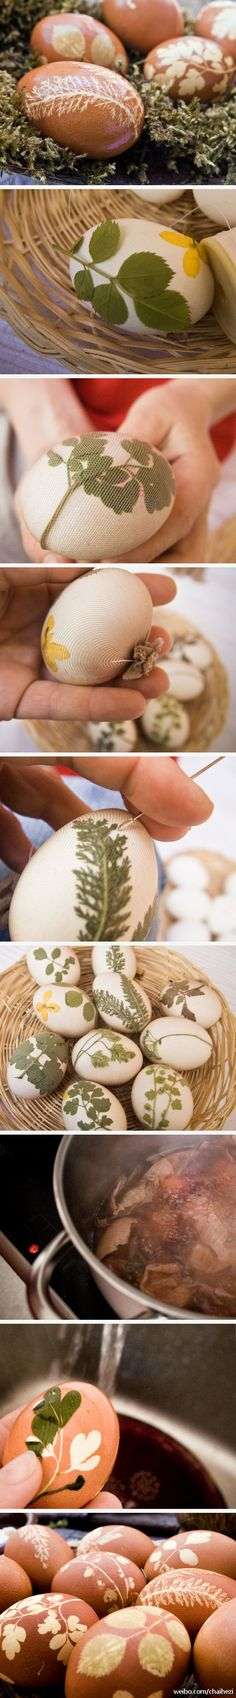 Another fun way to do Easter eggs